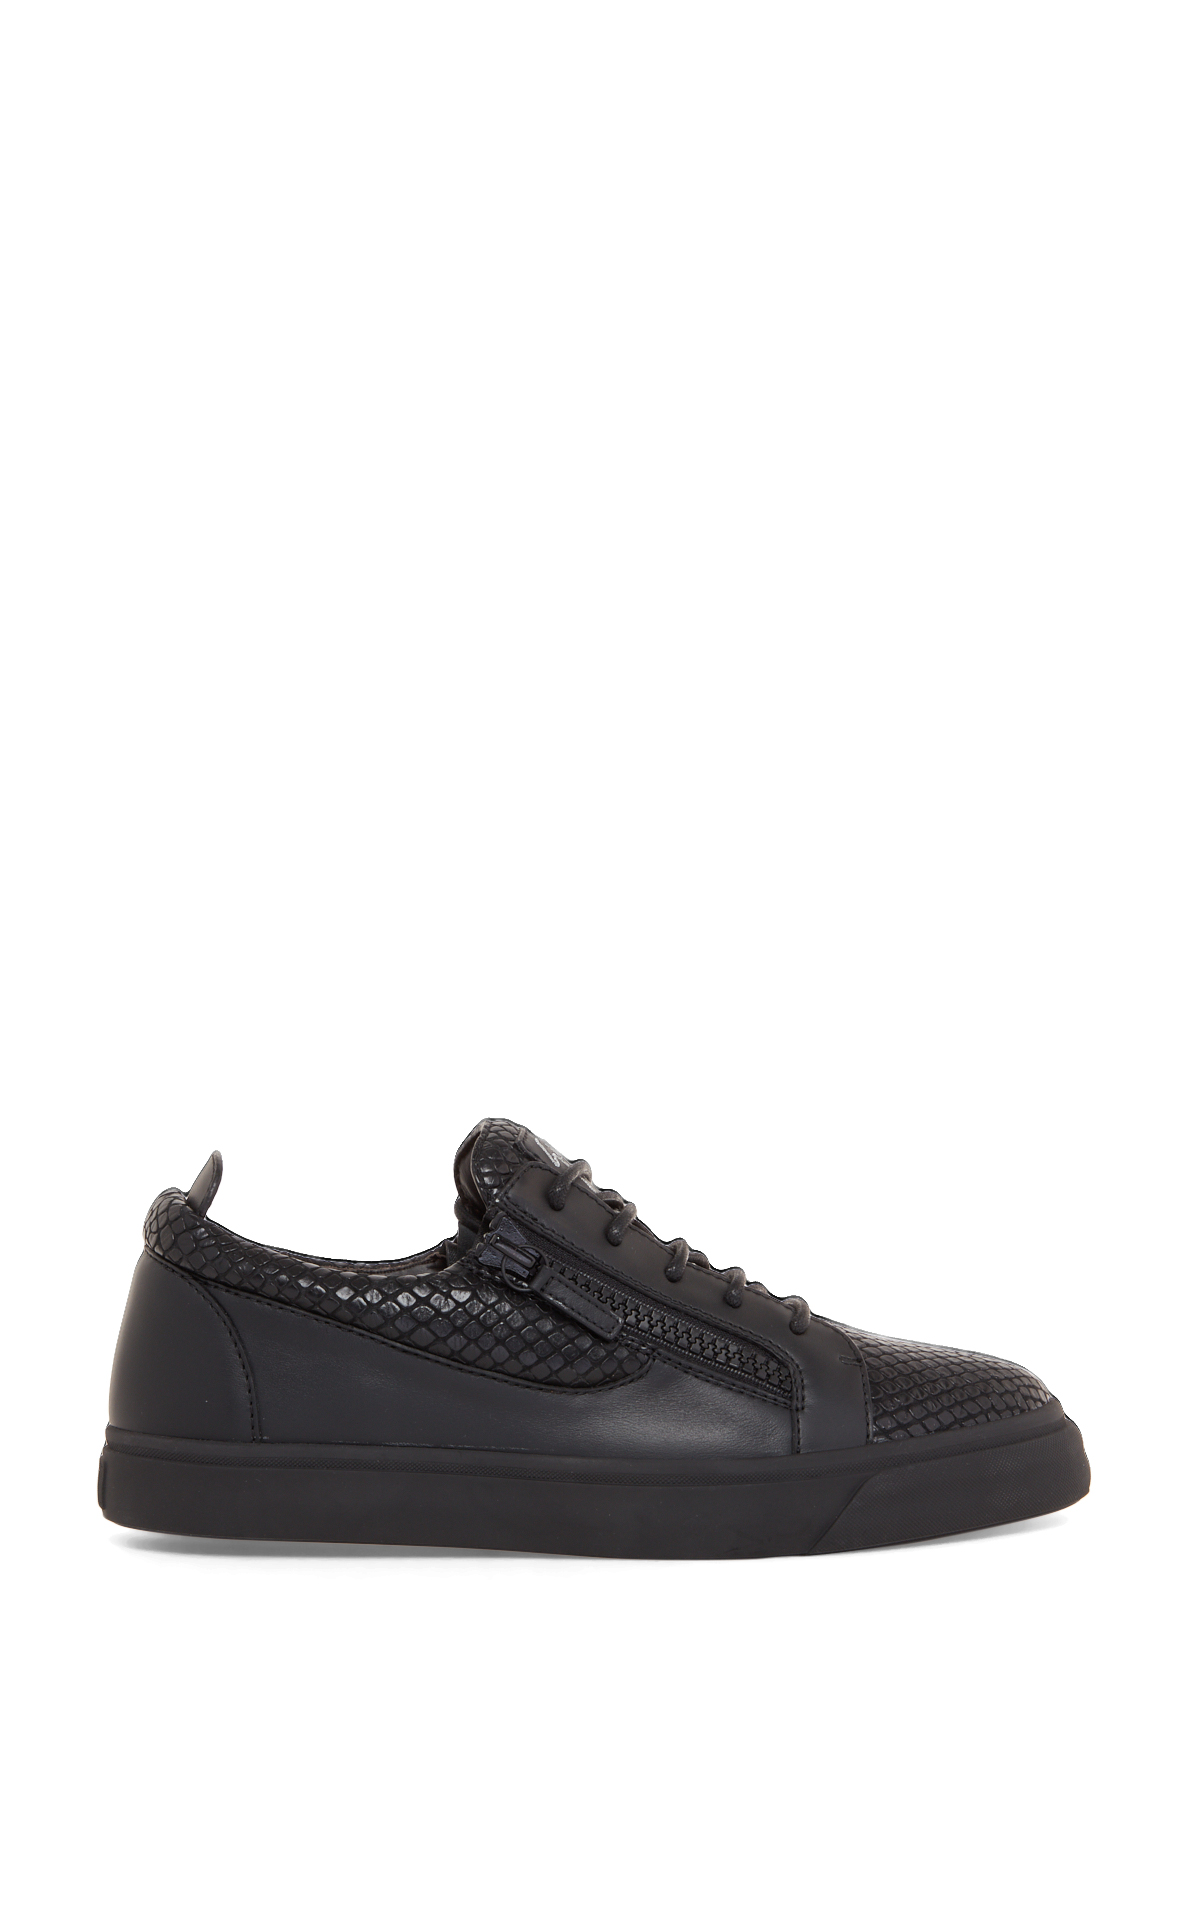 Zanotti Black sneakers with crocodile print detailing la vallée village